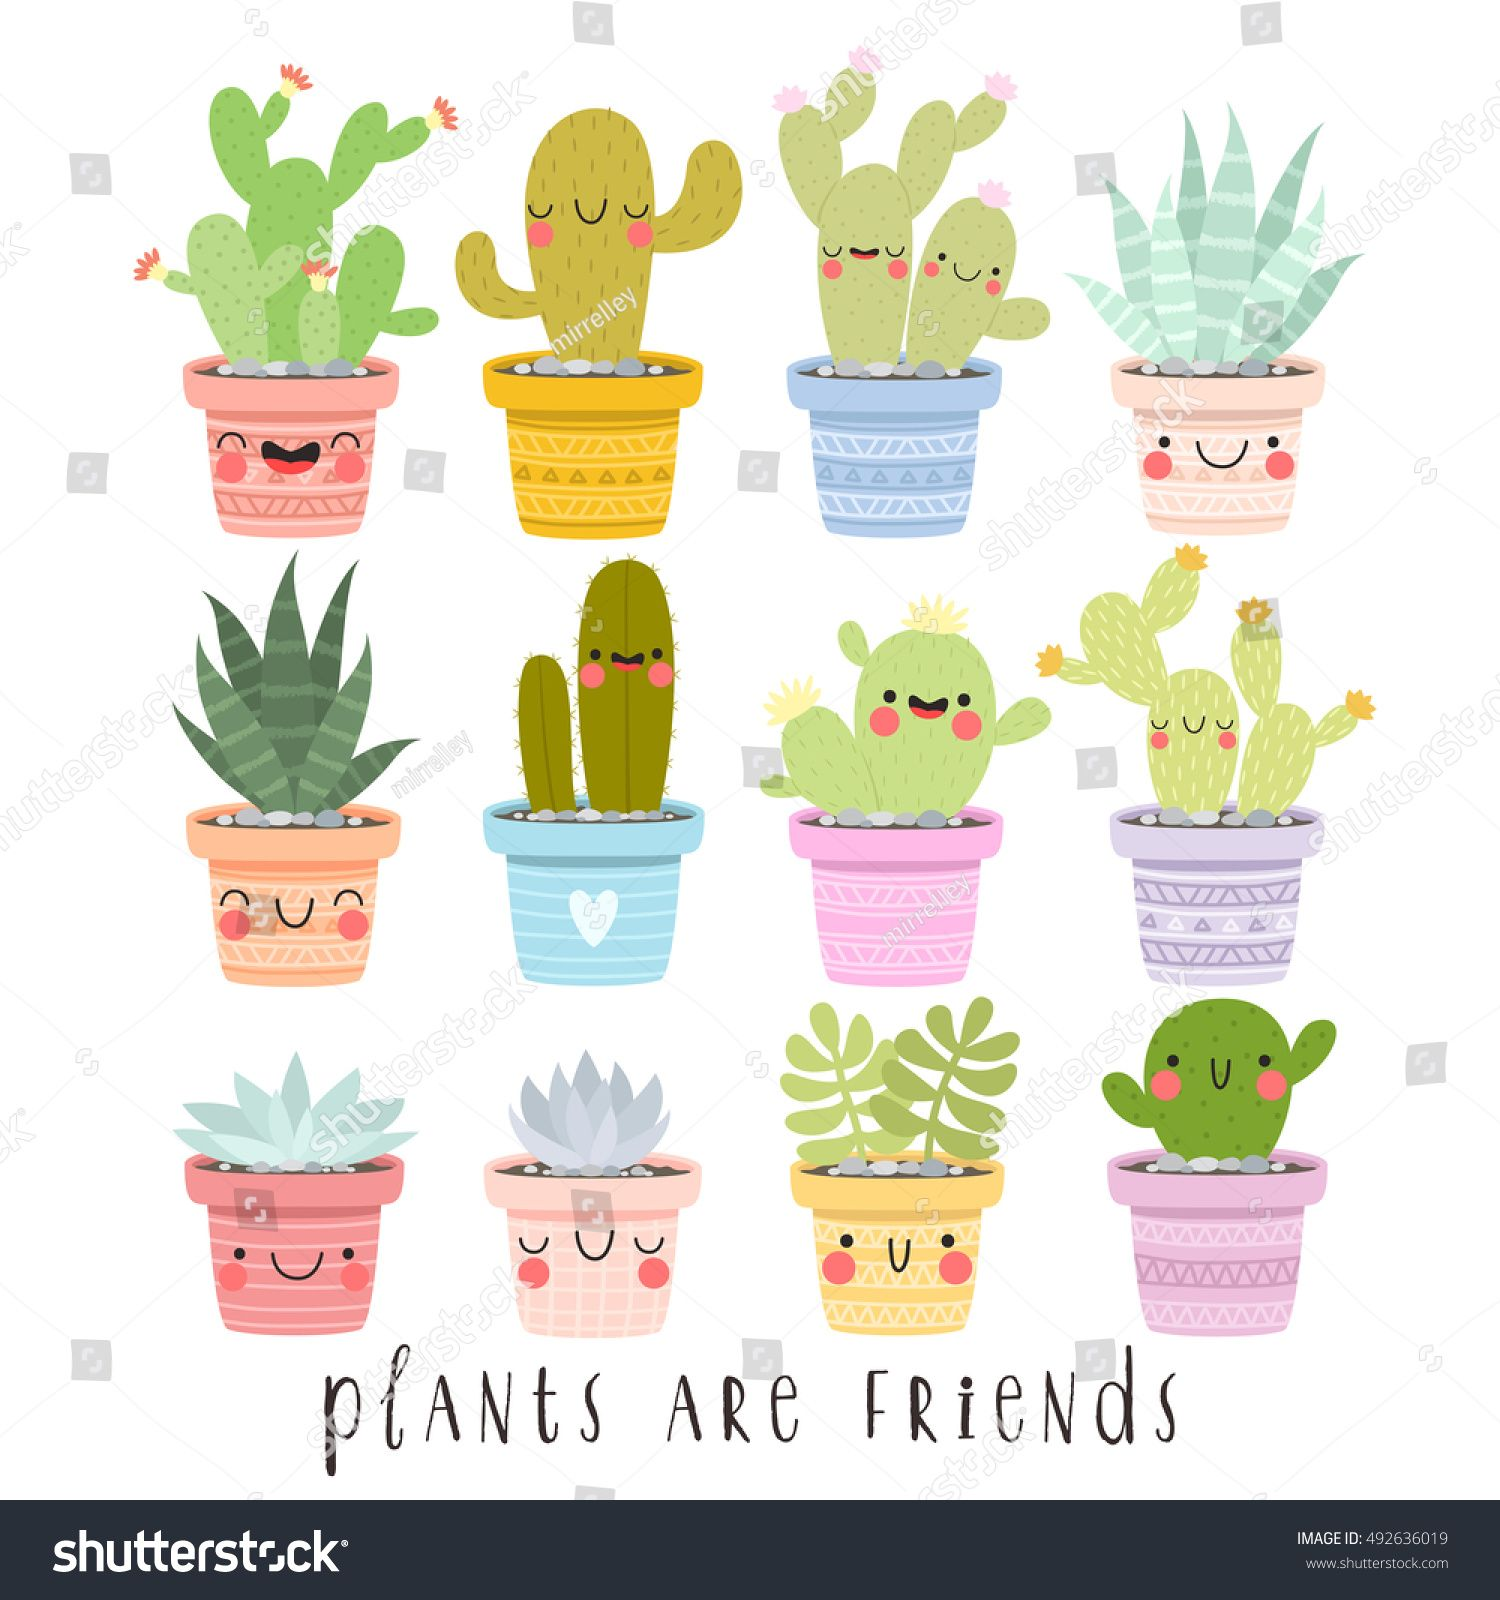 New Funny Face Big Set Illustrations Cute Cartoon Cactus Stock Vector (Royalty Free) 492636019 big set of illustrations of cute cartoon cactus and succulents with funny faces in pots and with plants are friends text message. can be used for cards, invitations or like sticker 6